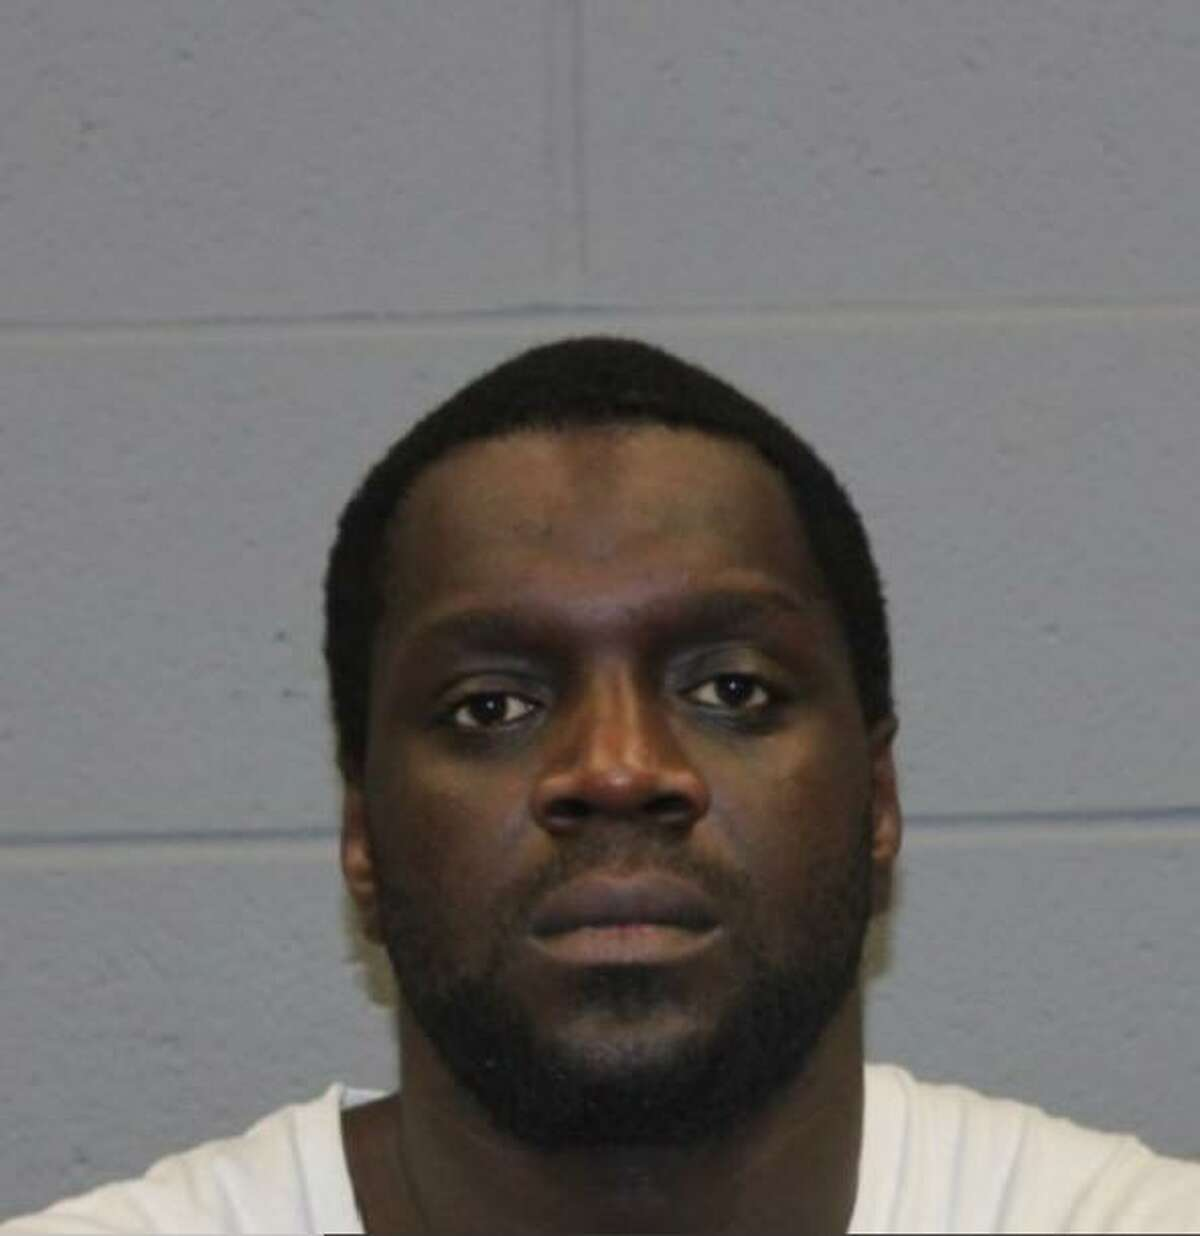 Donnell Butler, 38, was arrested by Waterbury, Conn., police on Sunday, July 11, 2021.